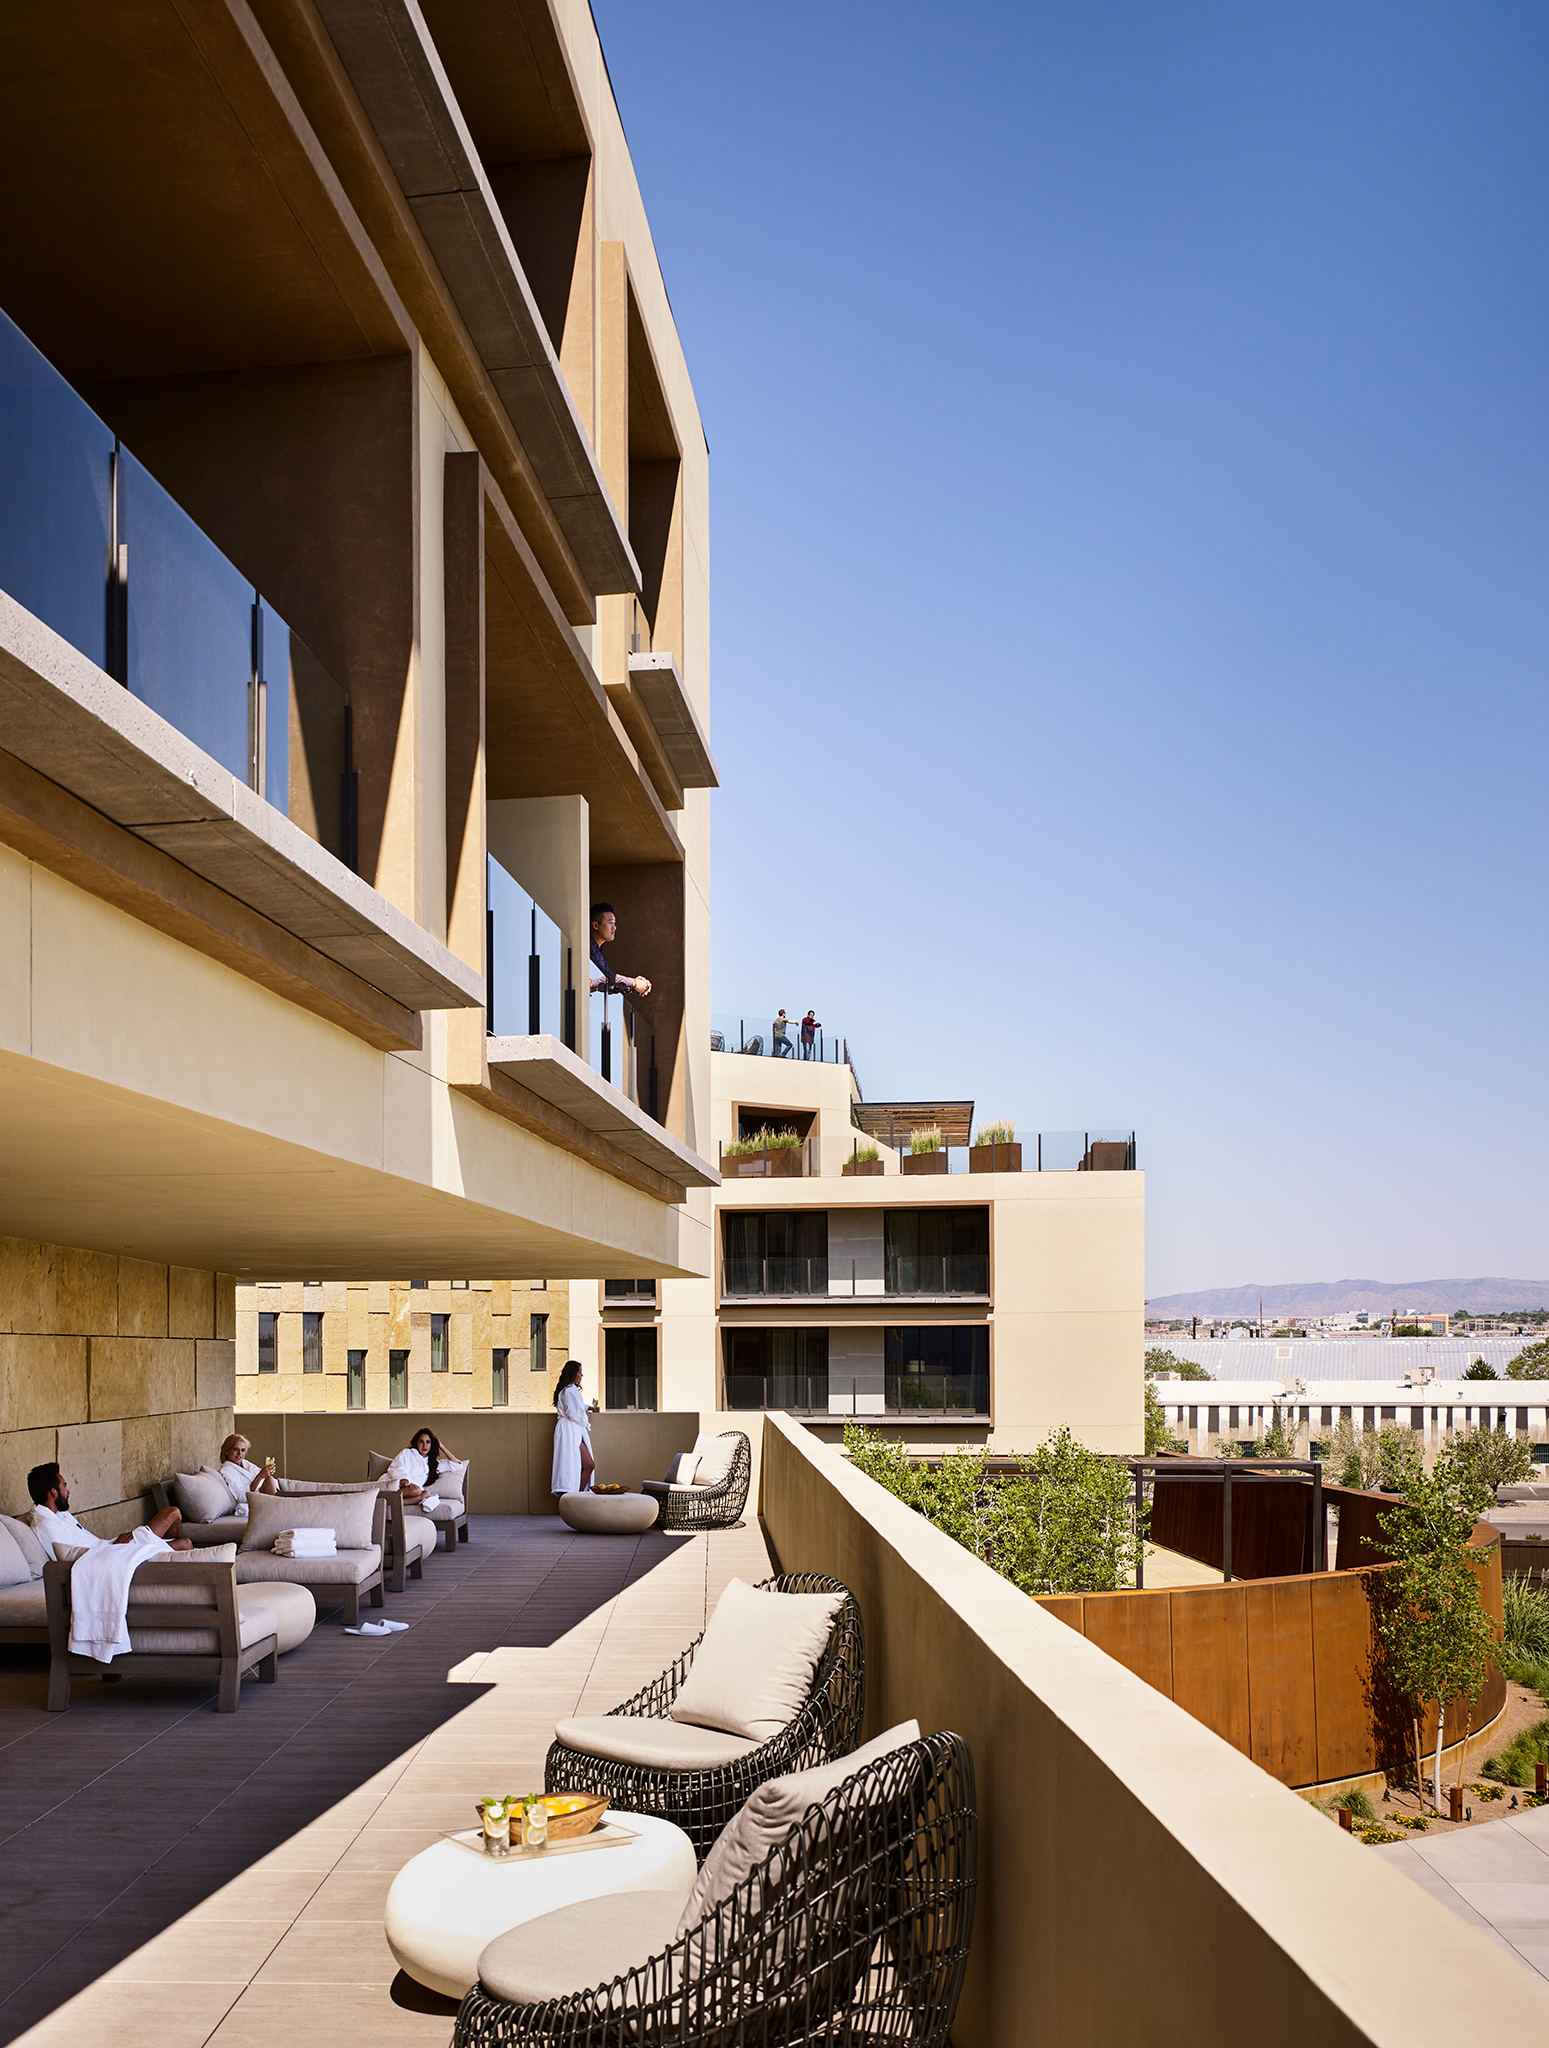 Hotel Chaco  Gensler  Albuquerque, New Mexico     Return to Projects